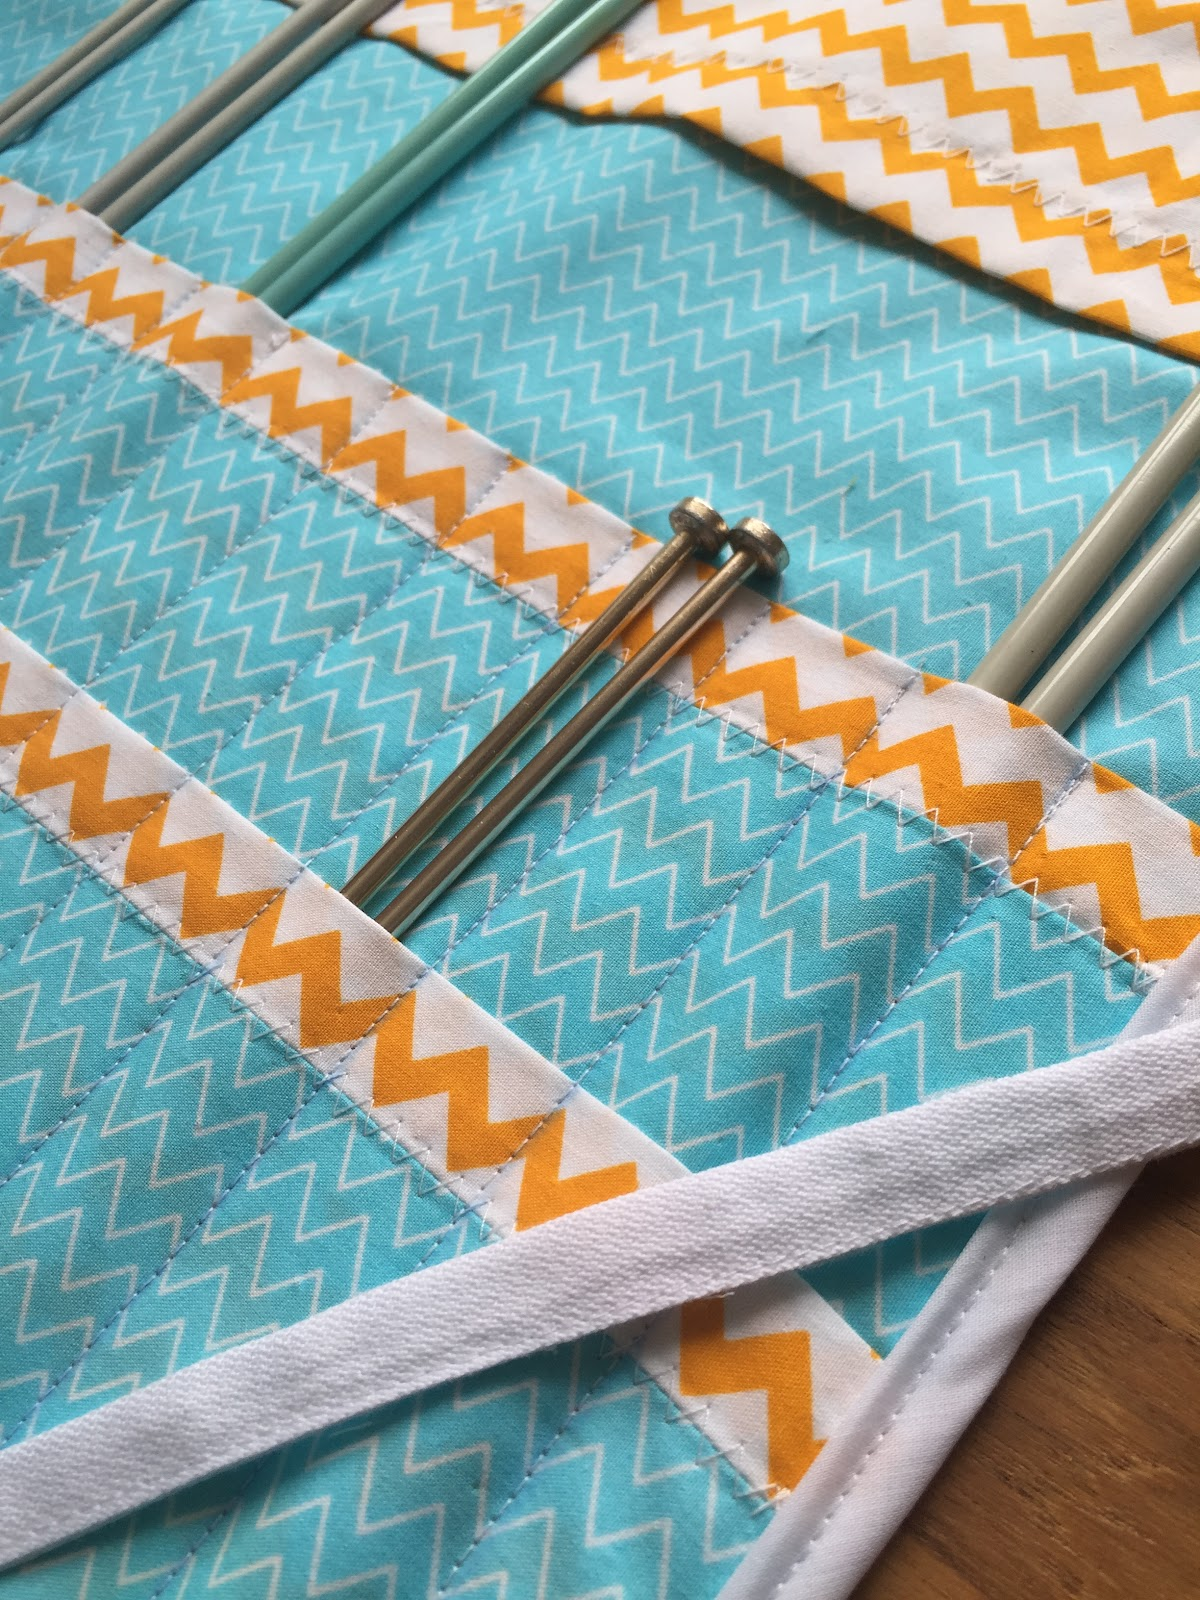 Knitting Needle Case Sewing Pattern : Storing your knitting needles